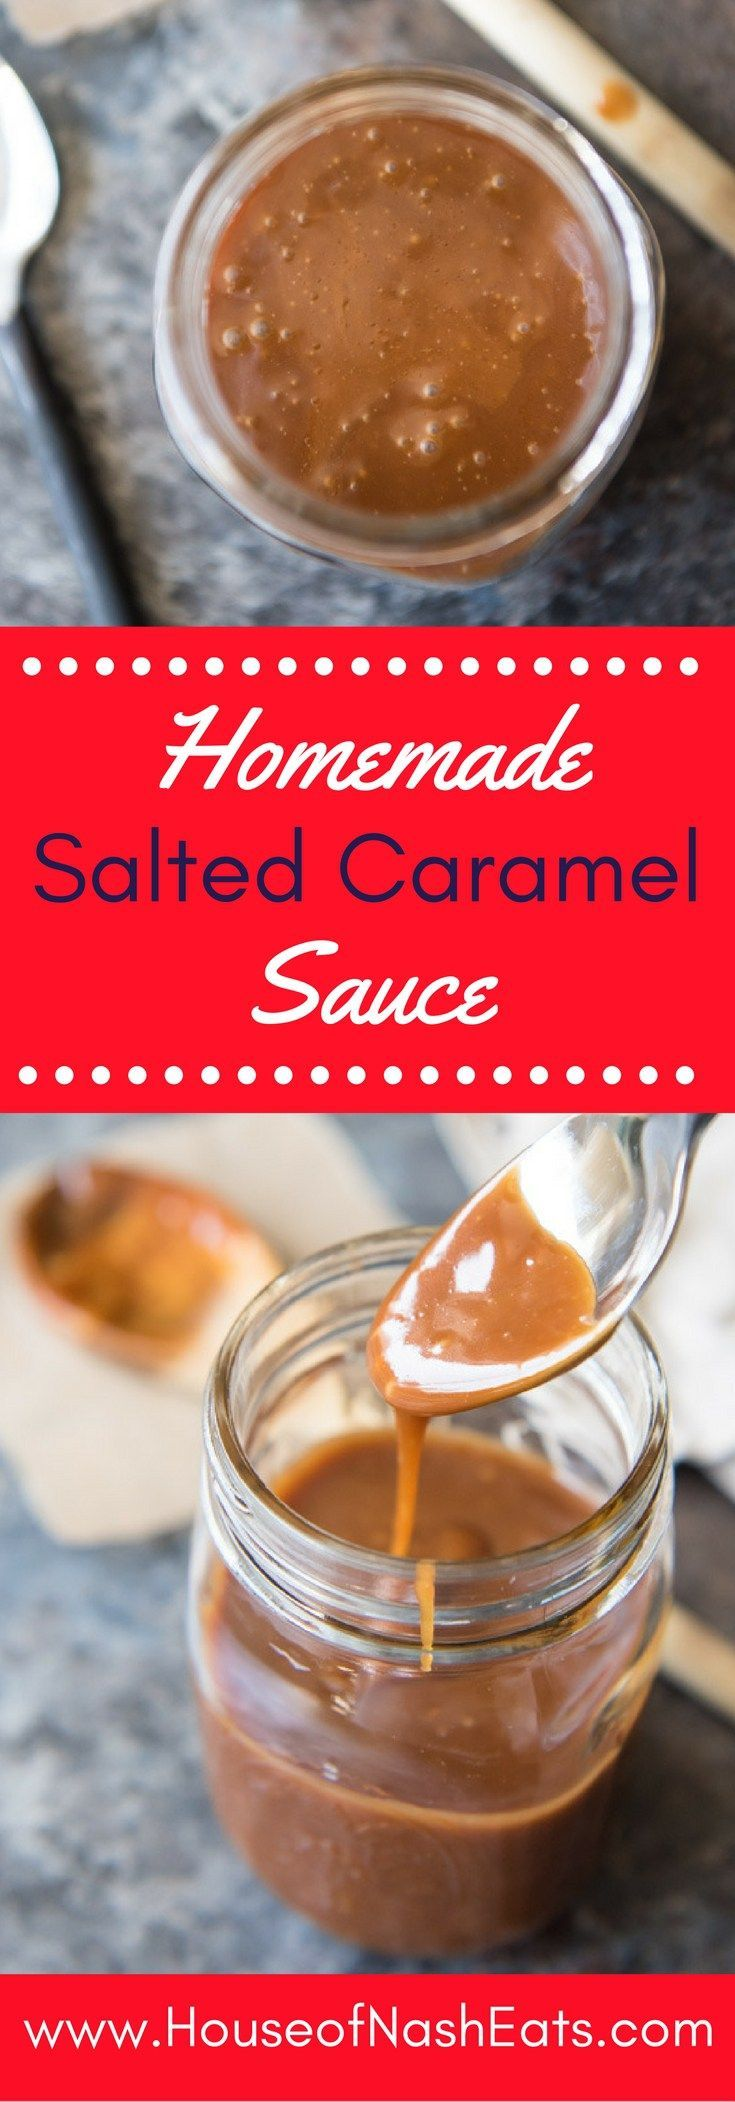 Just four ingredients, ten minutes, and no thermometer needed. This luscious but also ridiculously easy homemade salted caramel sauce is perfect for topping ice cream, pies, brownies, cookies, cheesecakes, and pretty much whatever else you can think of!